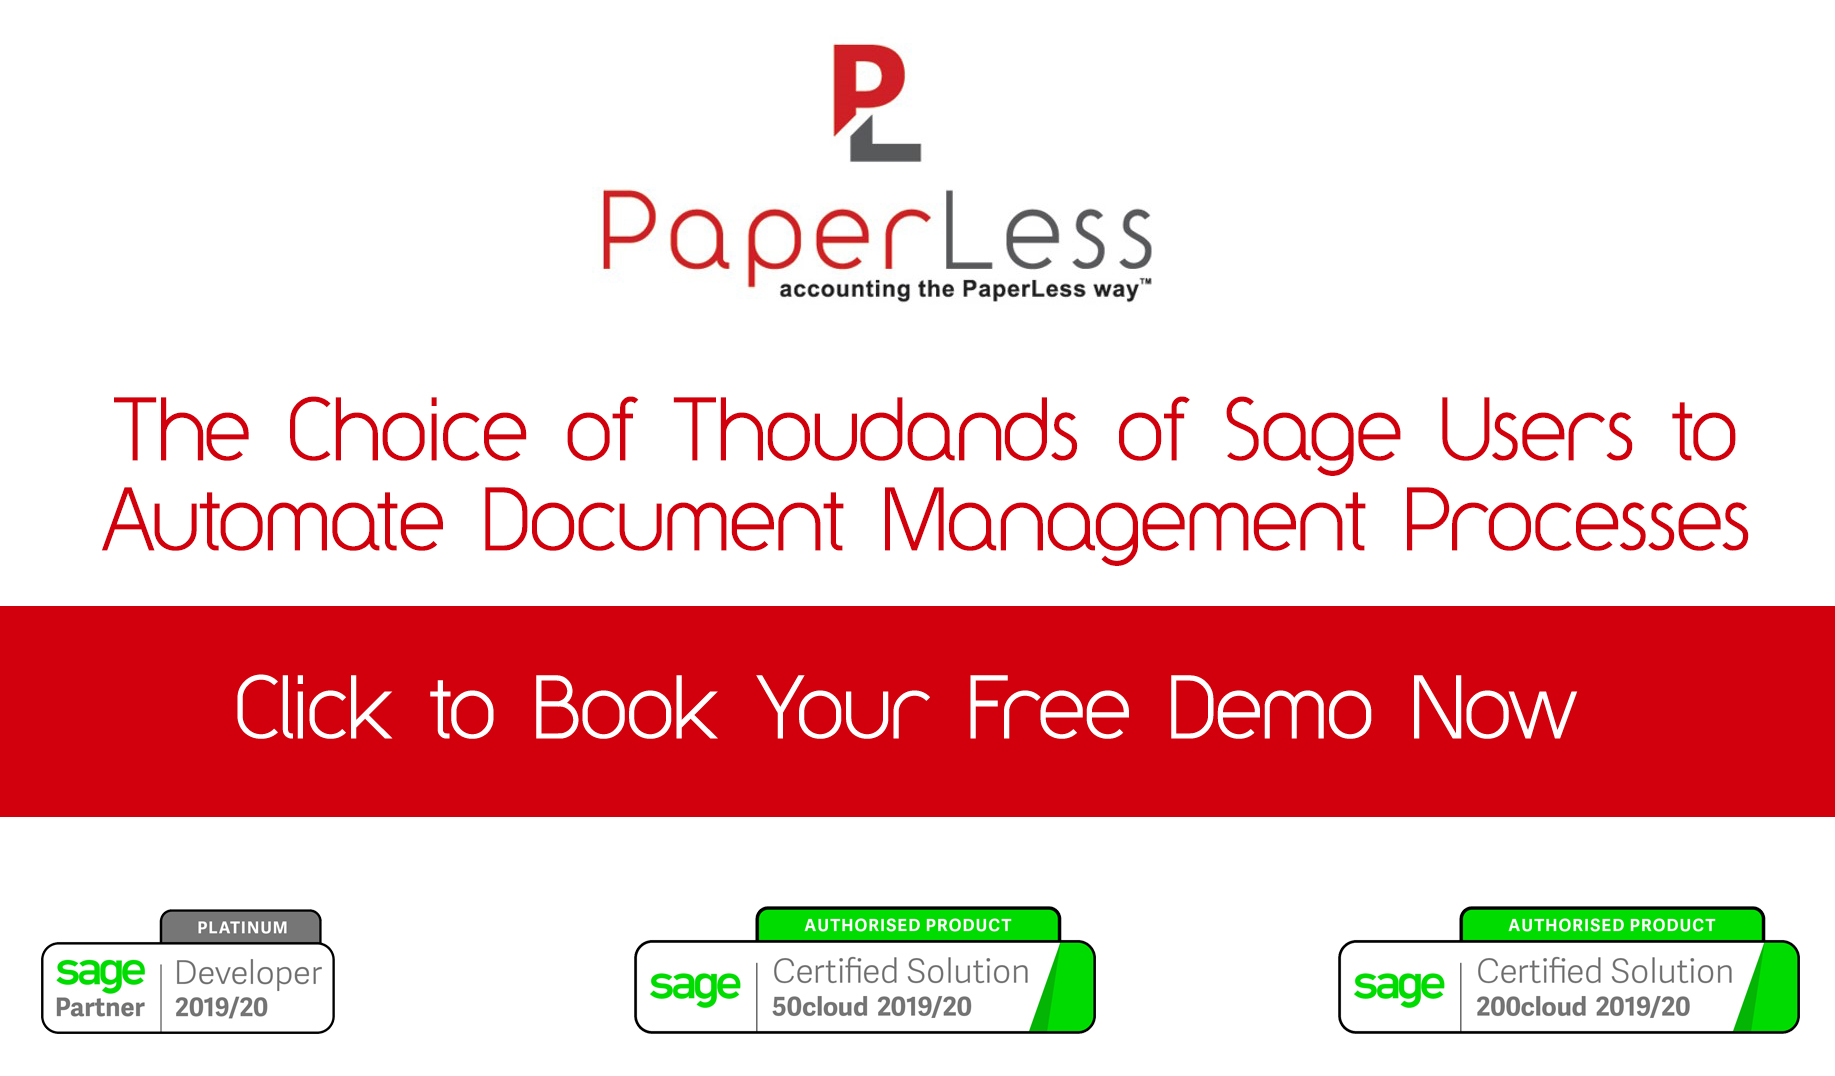 Click to Book Your Free Demo Now